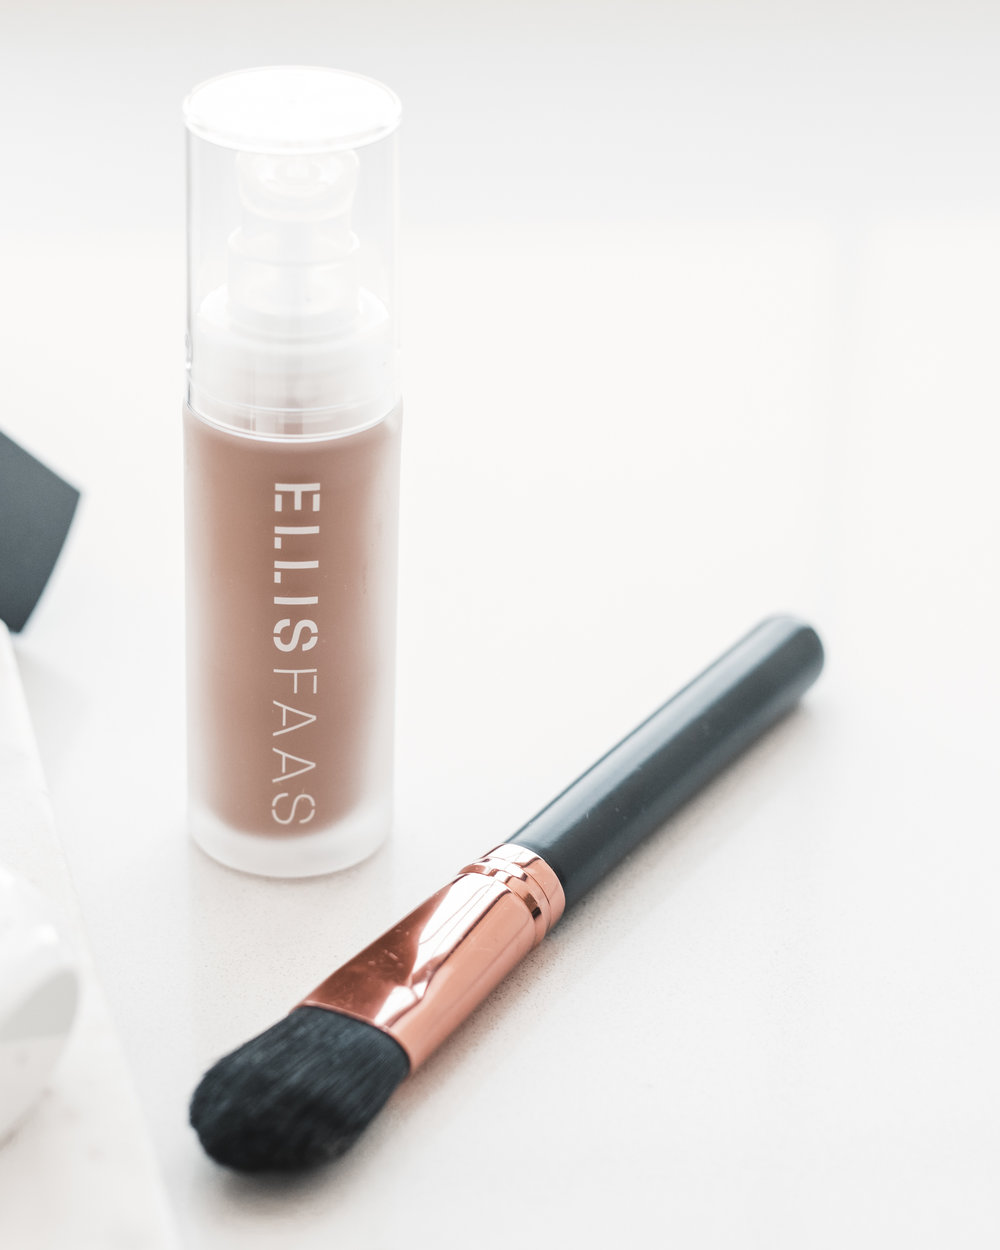 Ellis Faas - Skin Veil Foundation